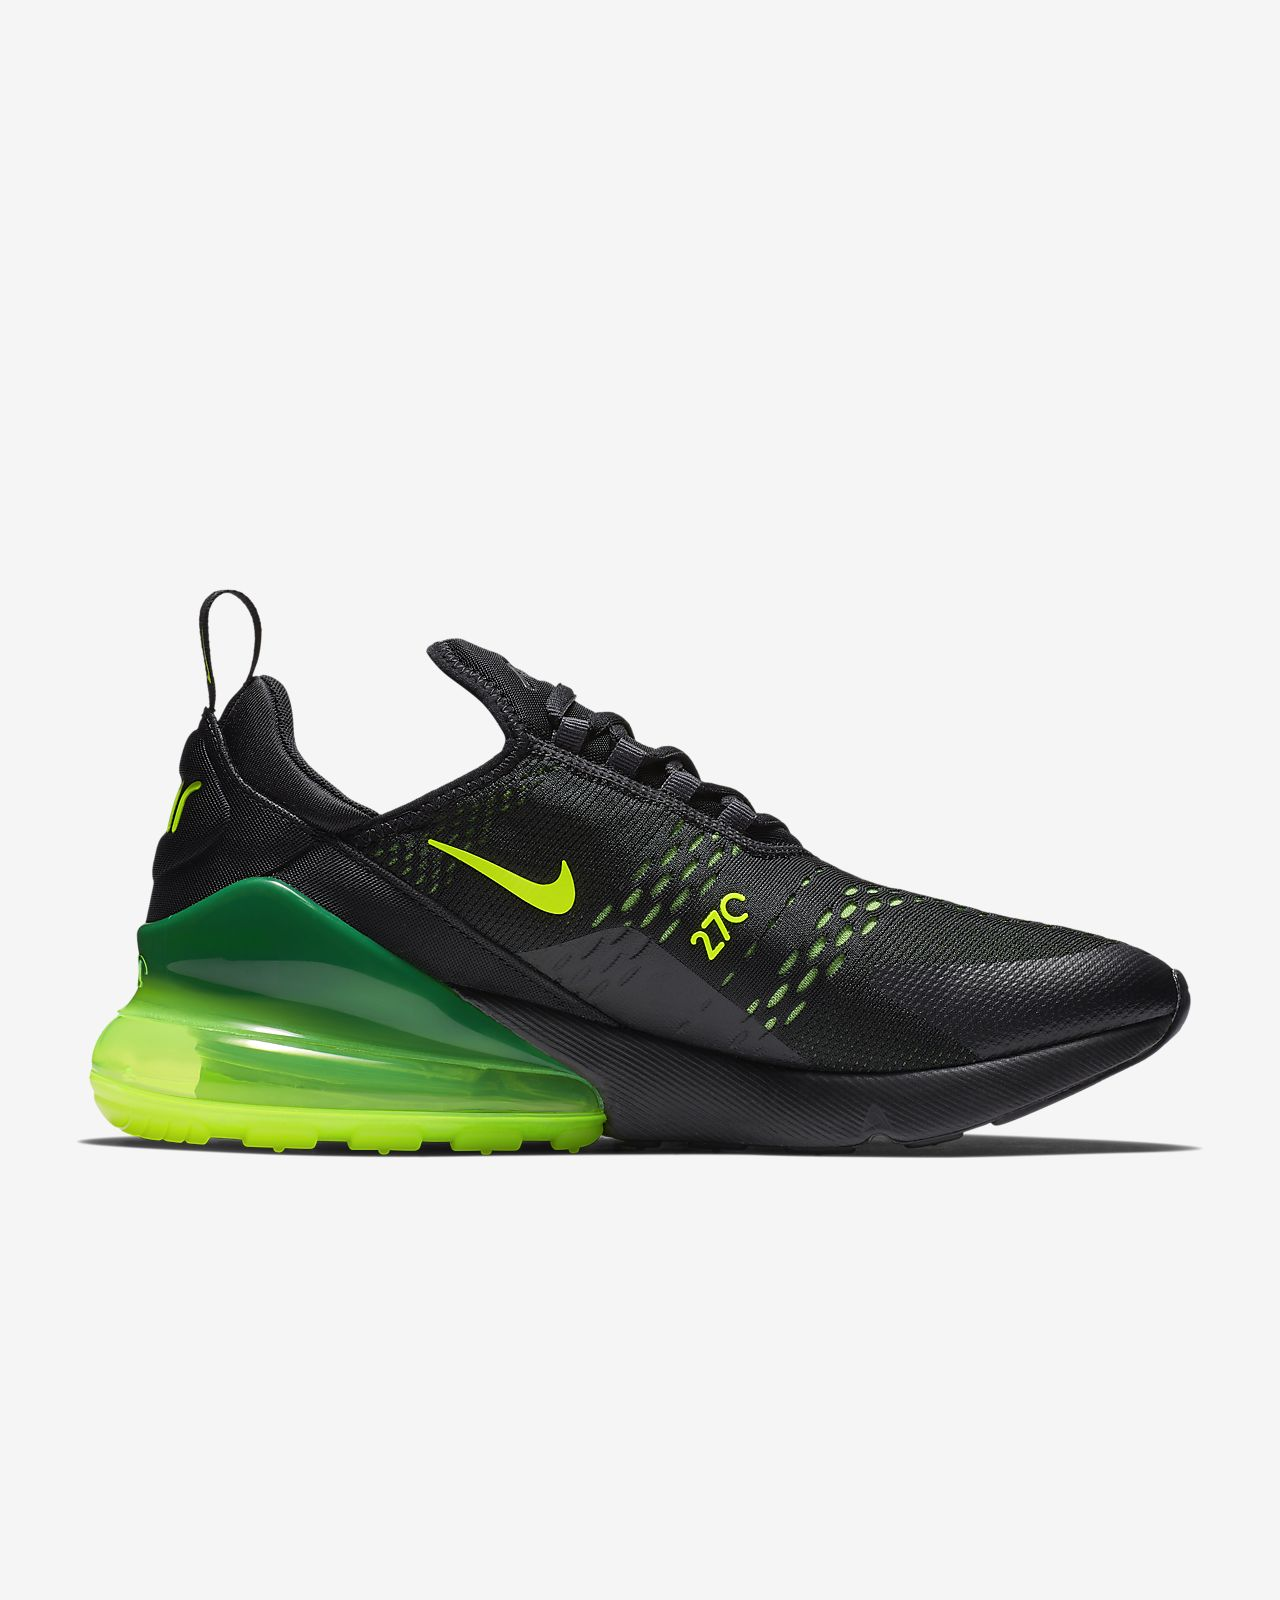 lowest price b8394 a8cf7 ... Nike Air Max 270 Men s Shoe